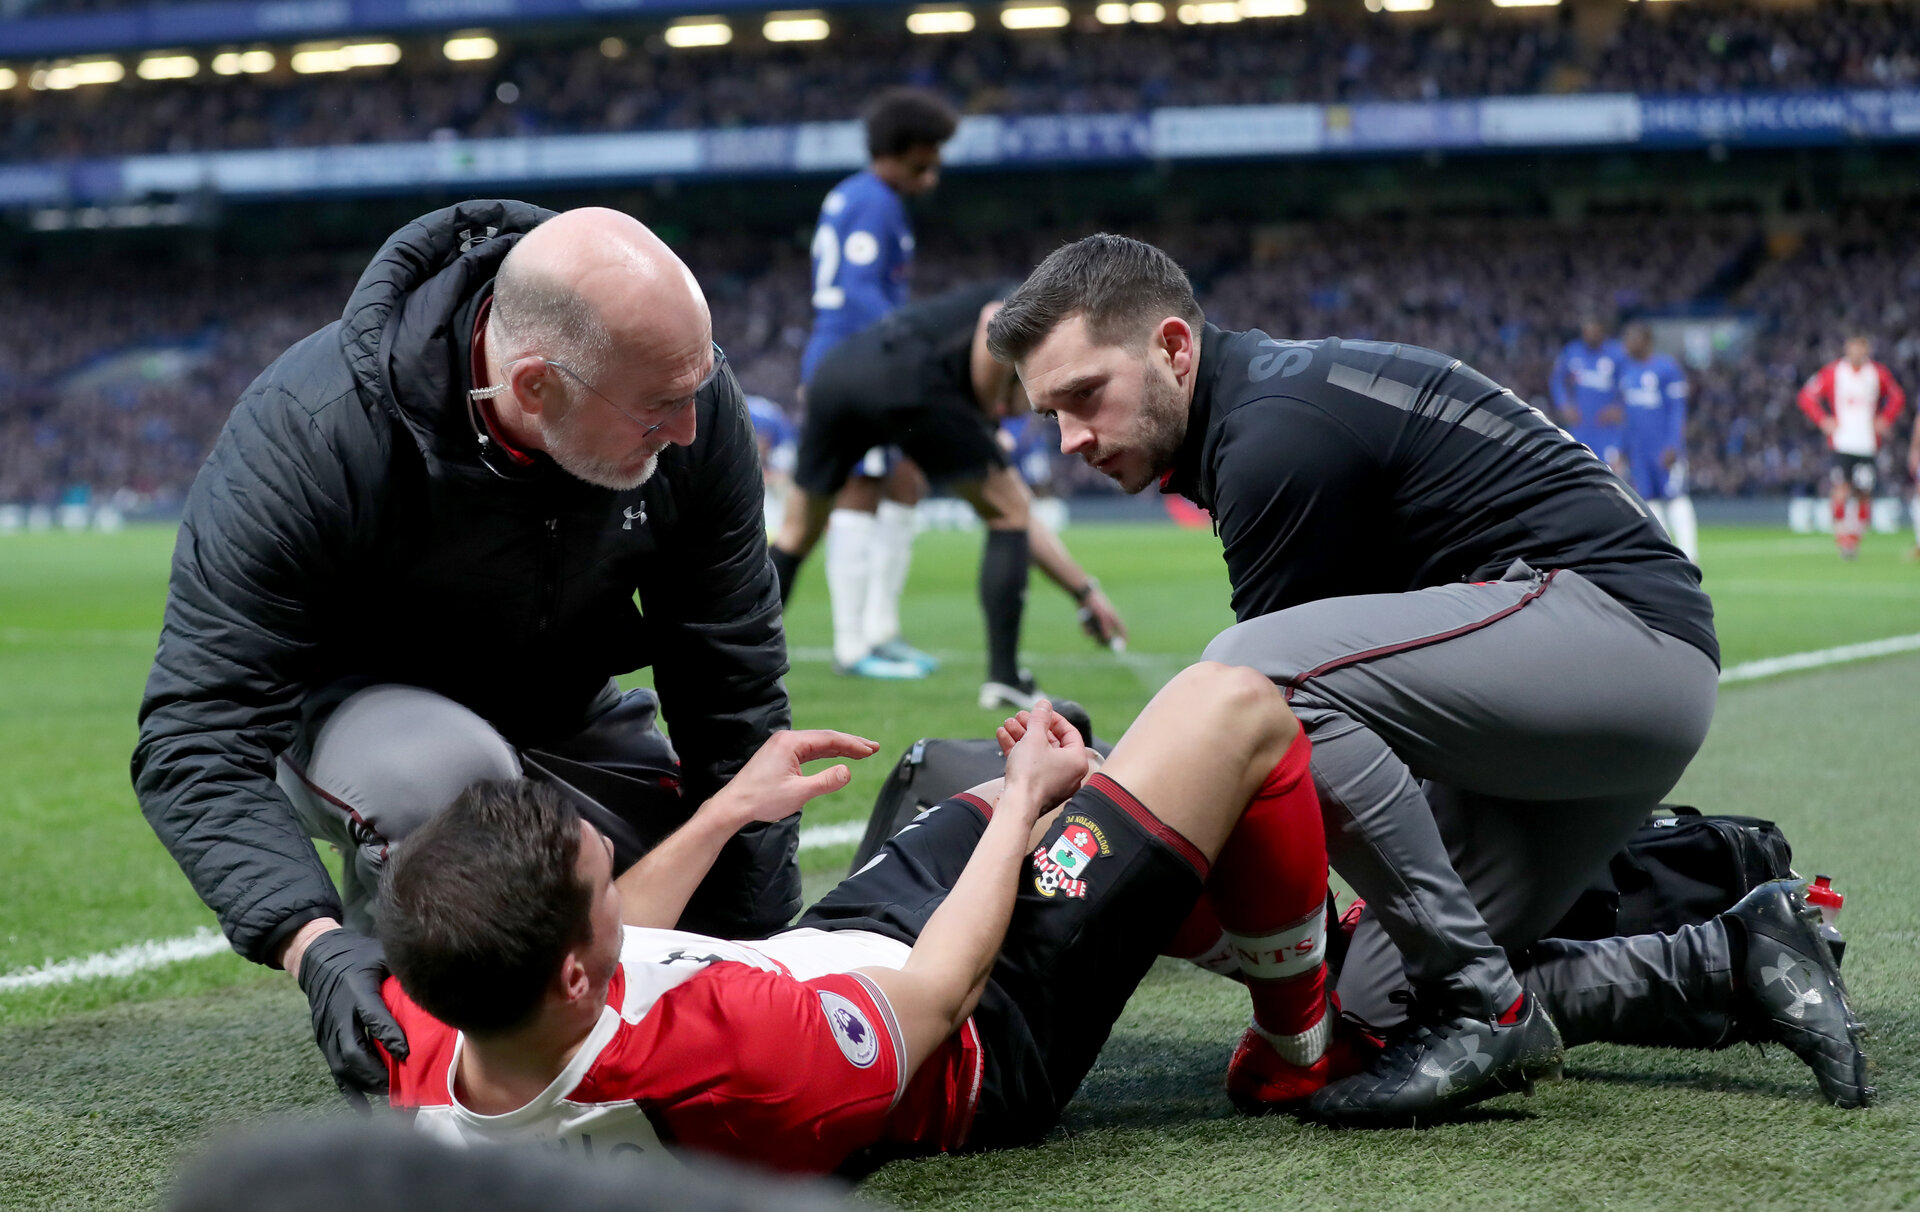 LONDON, ENGLAND - DECEMBER 16: Cedric receives treatment from Doctor Steve Baynes(L) and Kevin Mulholland during the Premier League match between Chelsea and Southampton at Stamford Bridge on December 16, 2017 in London, England. (Photo by Matt Watson/Southampton FC via Getty Images)